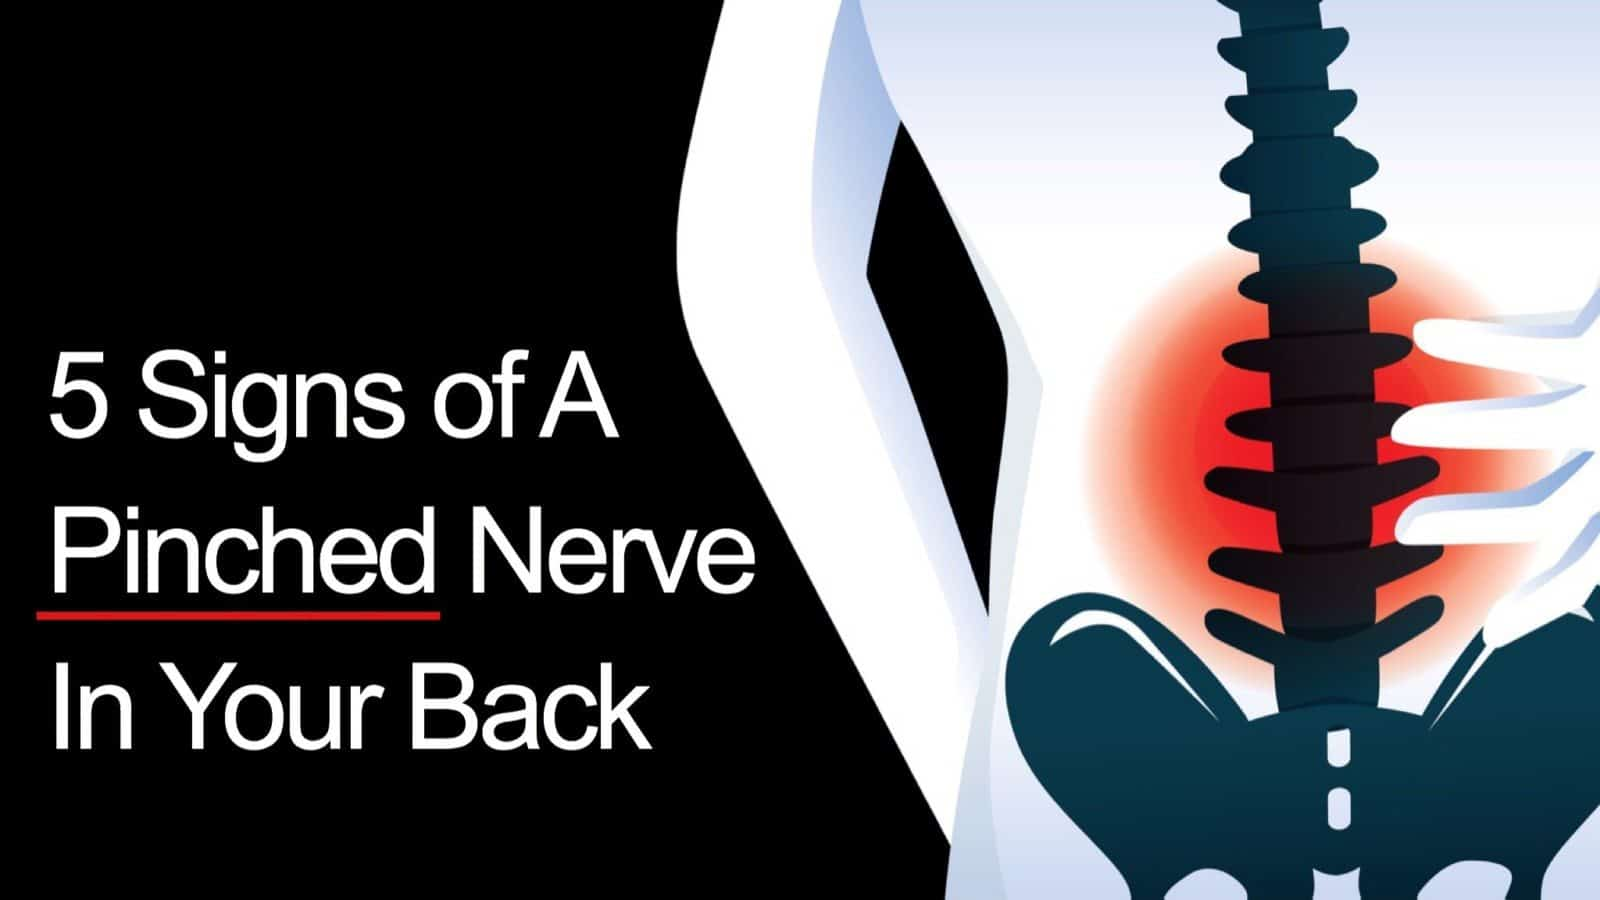 5 Signs Of A Pinched Nerve In Your Back